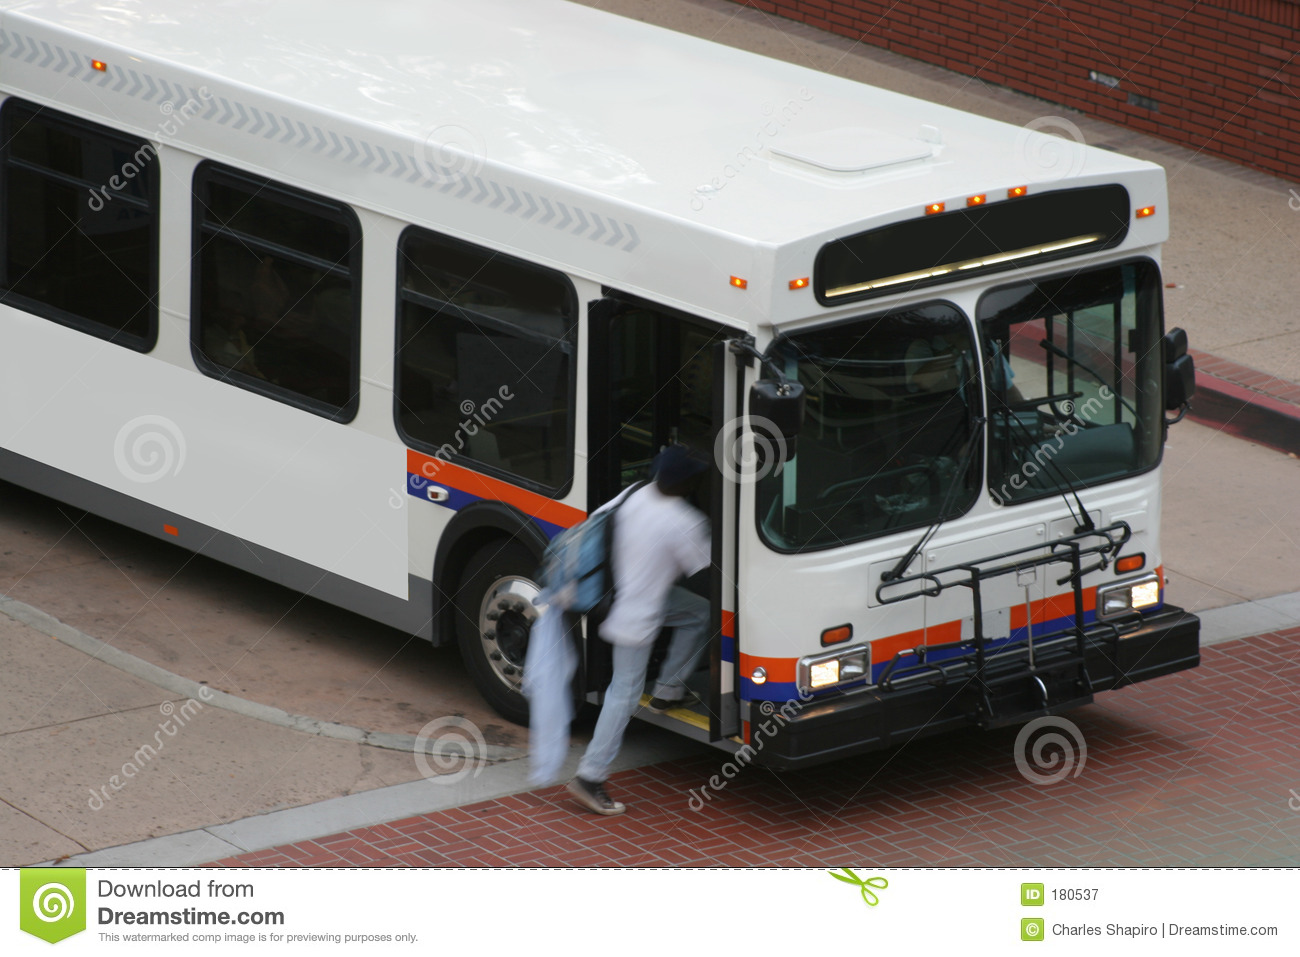 how to catch a bus in grennfield